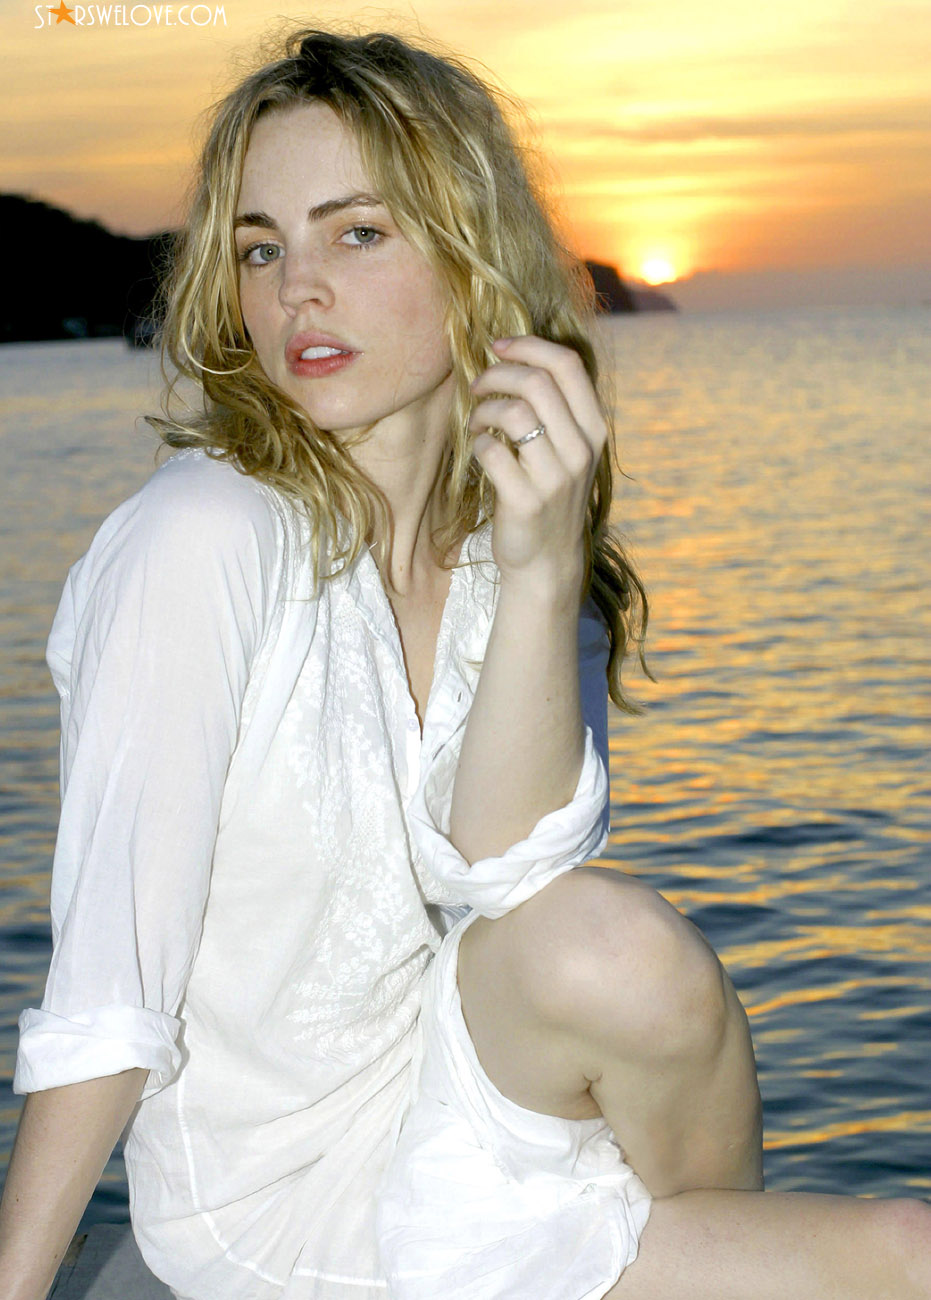 Melissa George photo (melissa_george029, 931 x 1300 pixels, 230 kB)